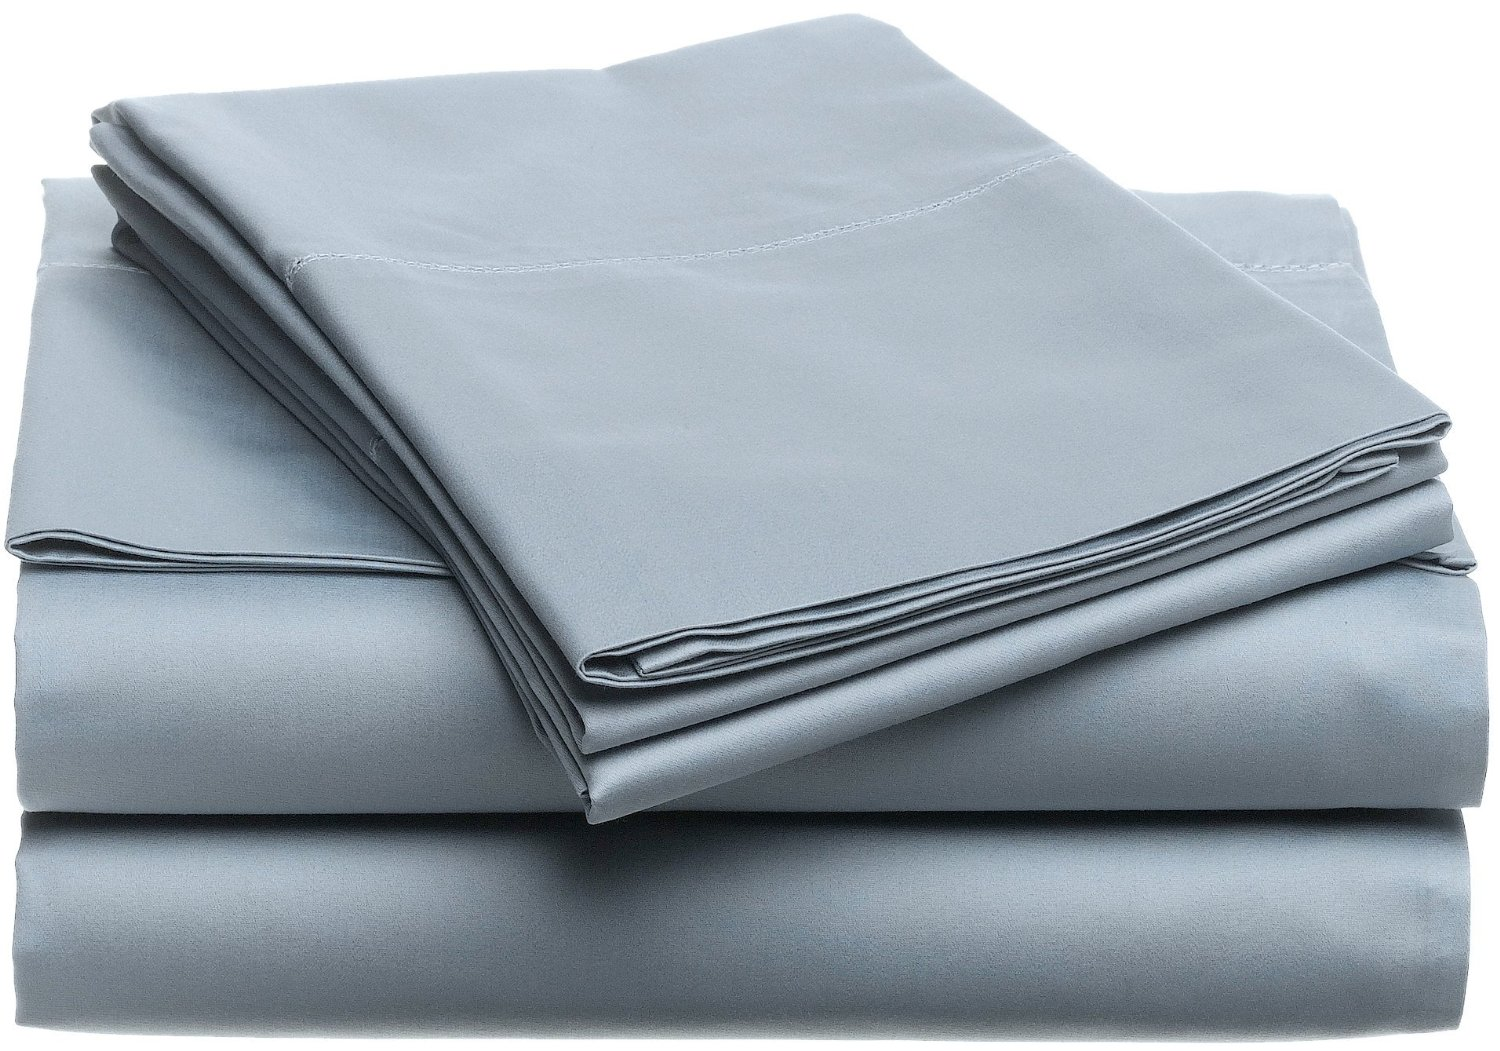 Select Edition 600 Thread Count Egyptian Cotton